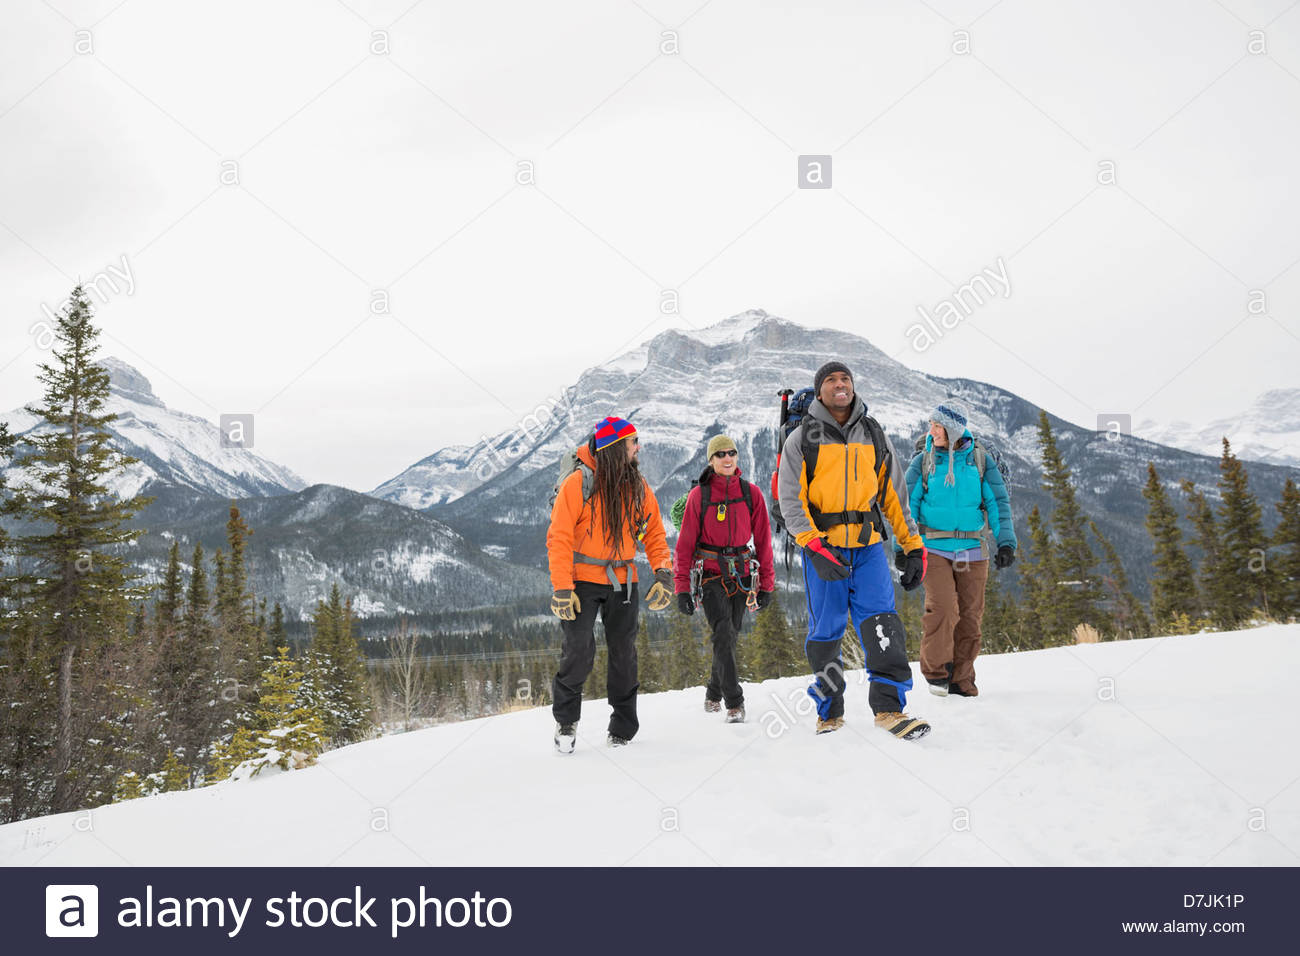 Group of friends on winter hike in mountains - Stock Image